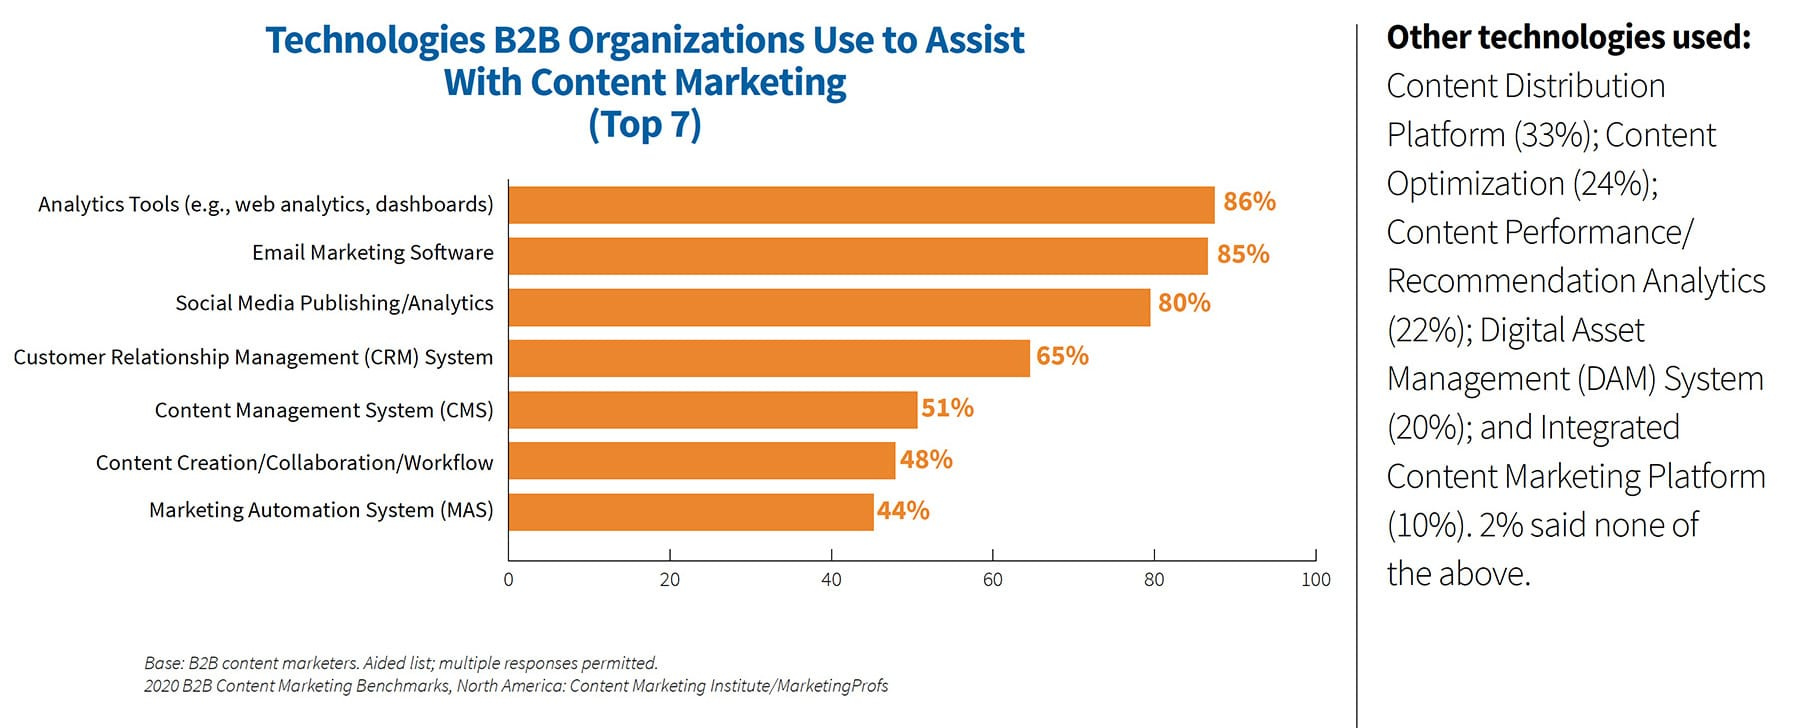 B2B marketers rely on technology for managing content marketing